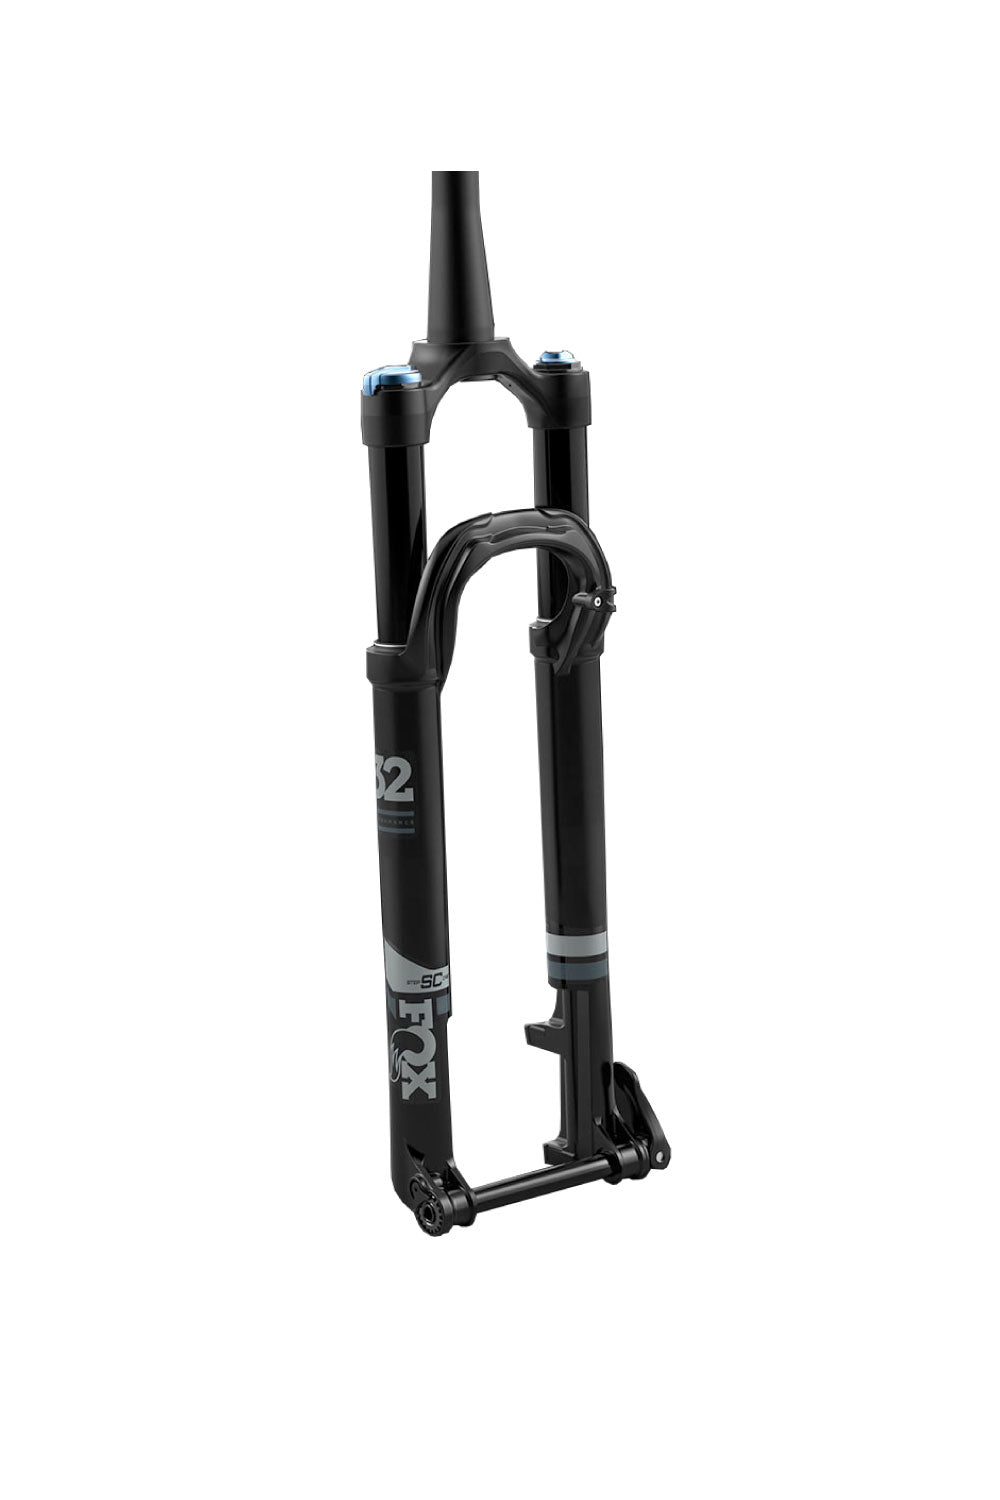 2020 Fox Performance Fork 32 29 100mm Step Cast 15x110 Boost 51mm Offset Black